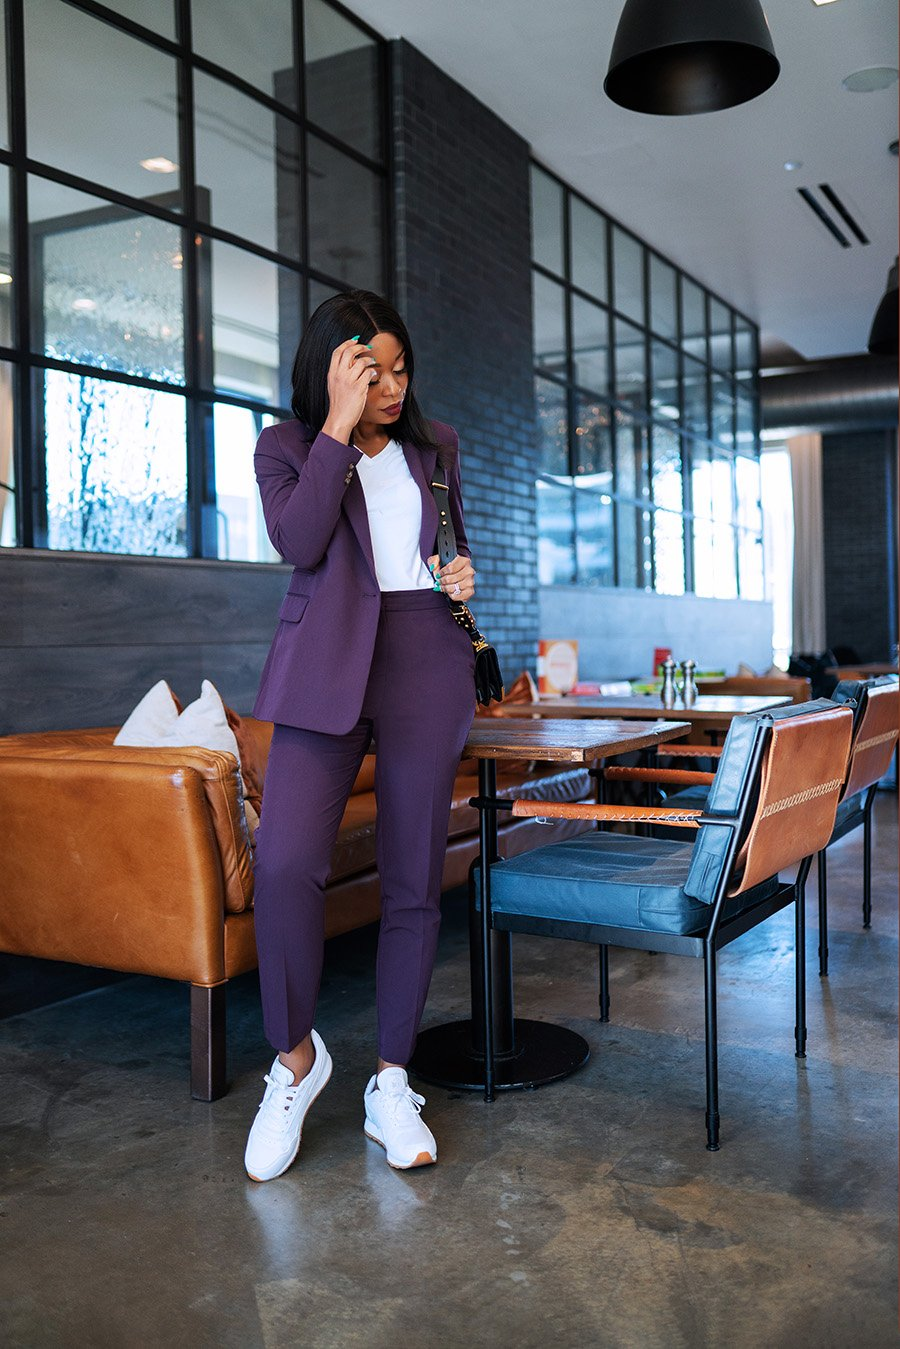 Stella-Adewunmi-of-jadore-fashion-colored-suits-and-sneakers